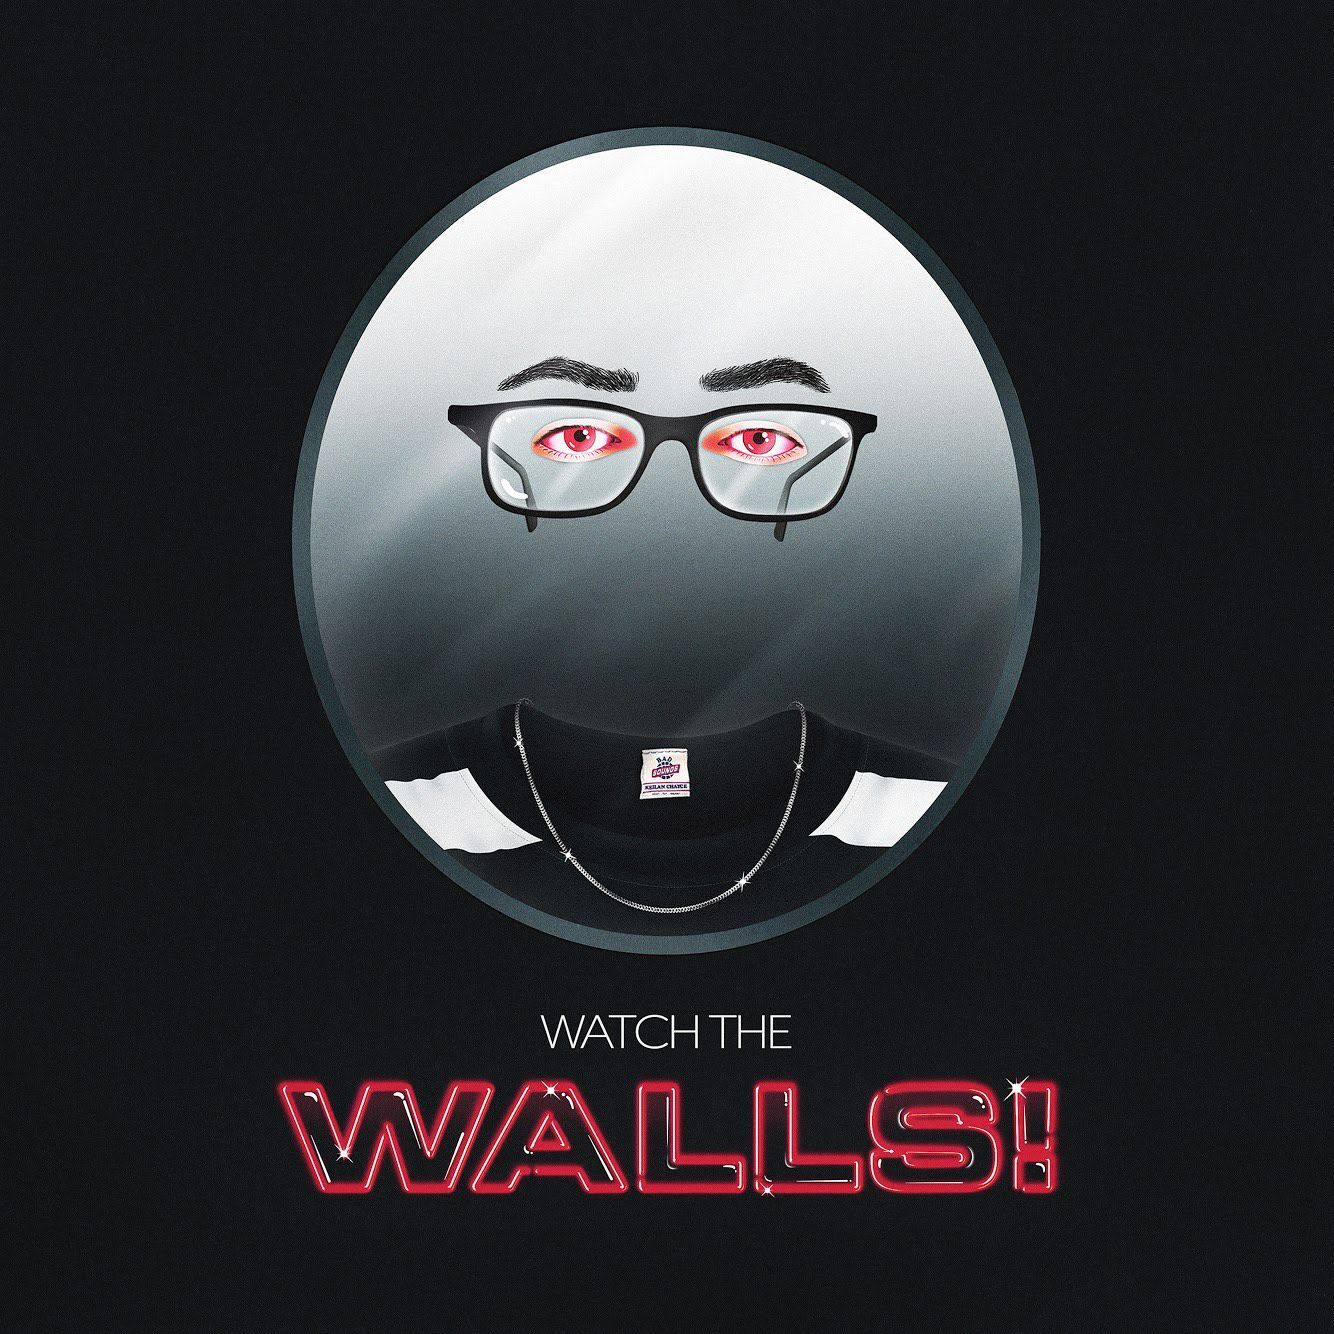 Watch the Walls!